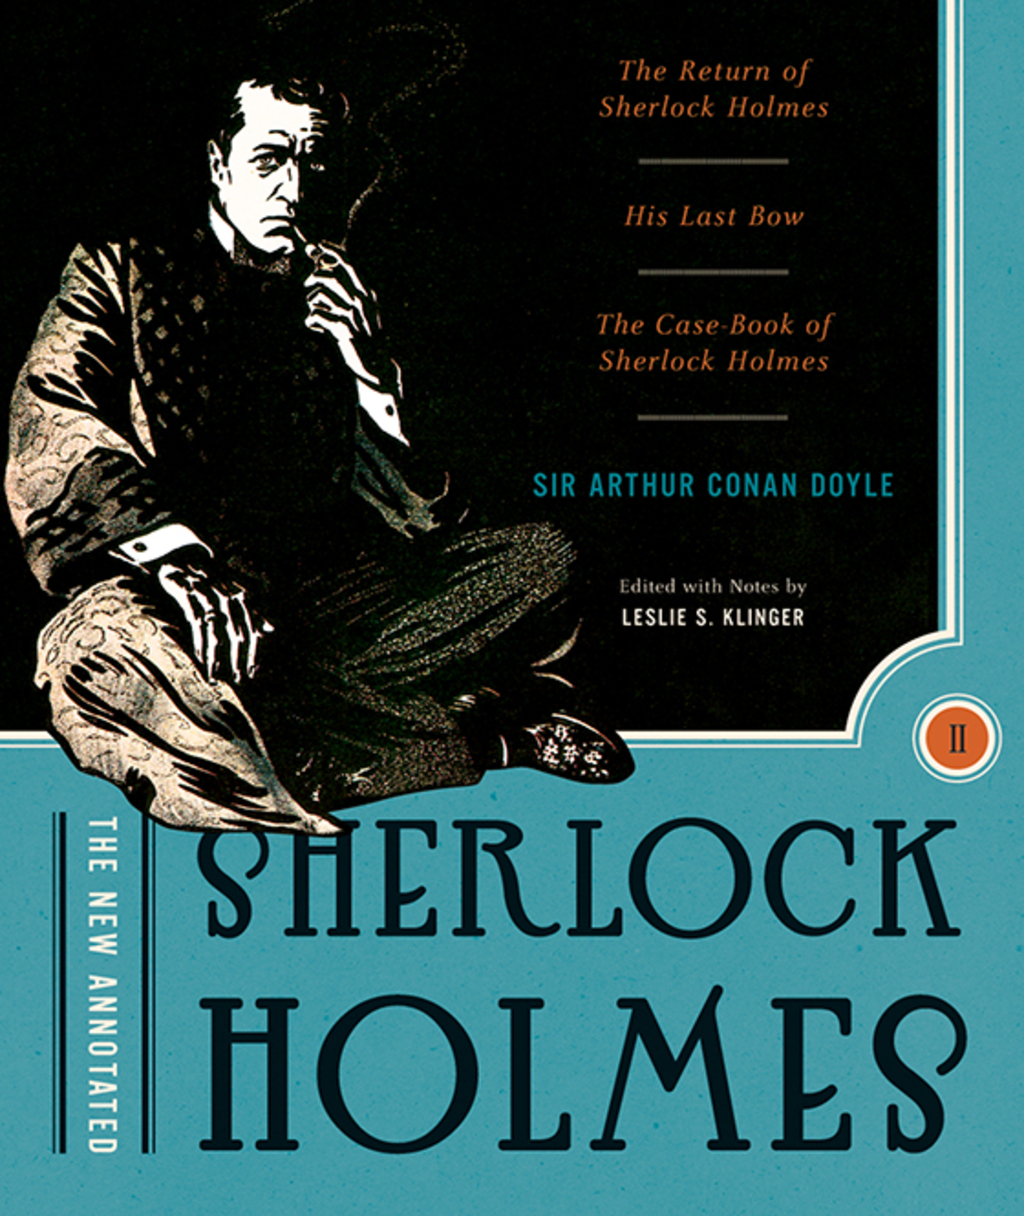 The New Annotated Sherlock Holmes: The Complete Short Stories: The Return of Sherlock Holmes, His Last Bow and The Case-Book of Sherlock Holmes (Non-slipcased edition)  (Vol. 2)  (The Annotated Books) (ebook) eBooks